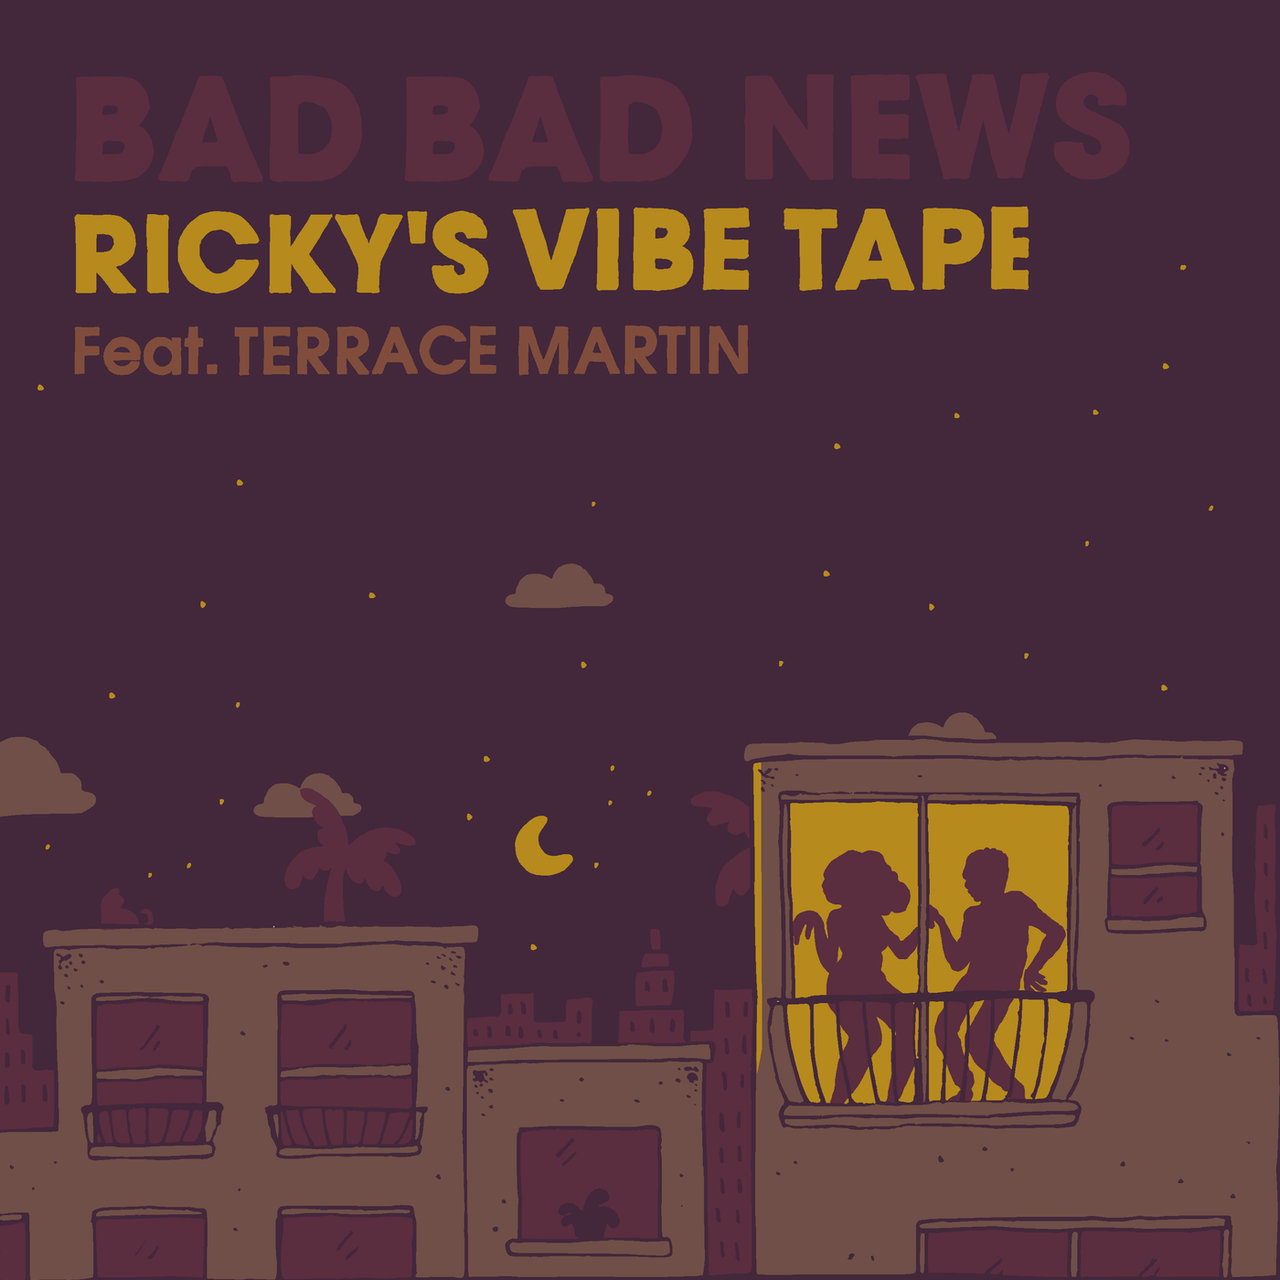 Bad Bad News (Ricky's Vibe Tape)